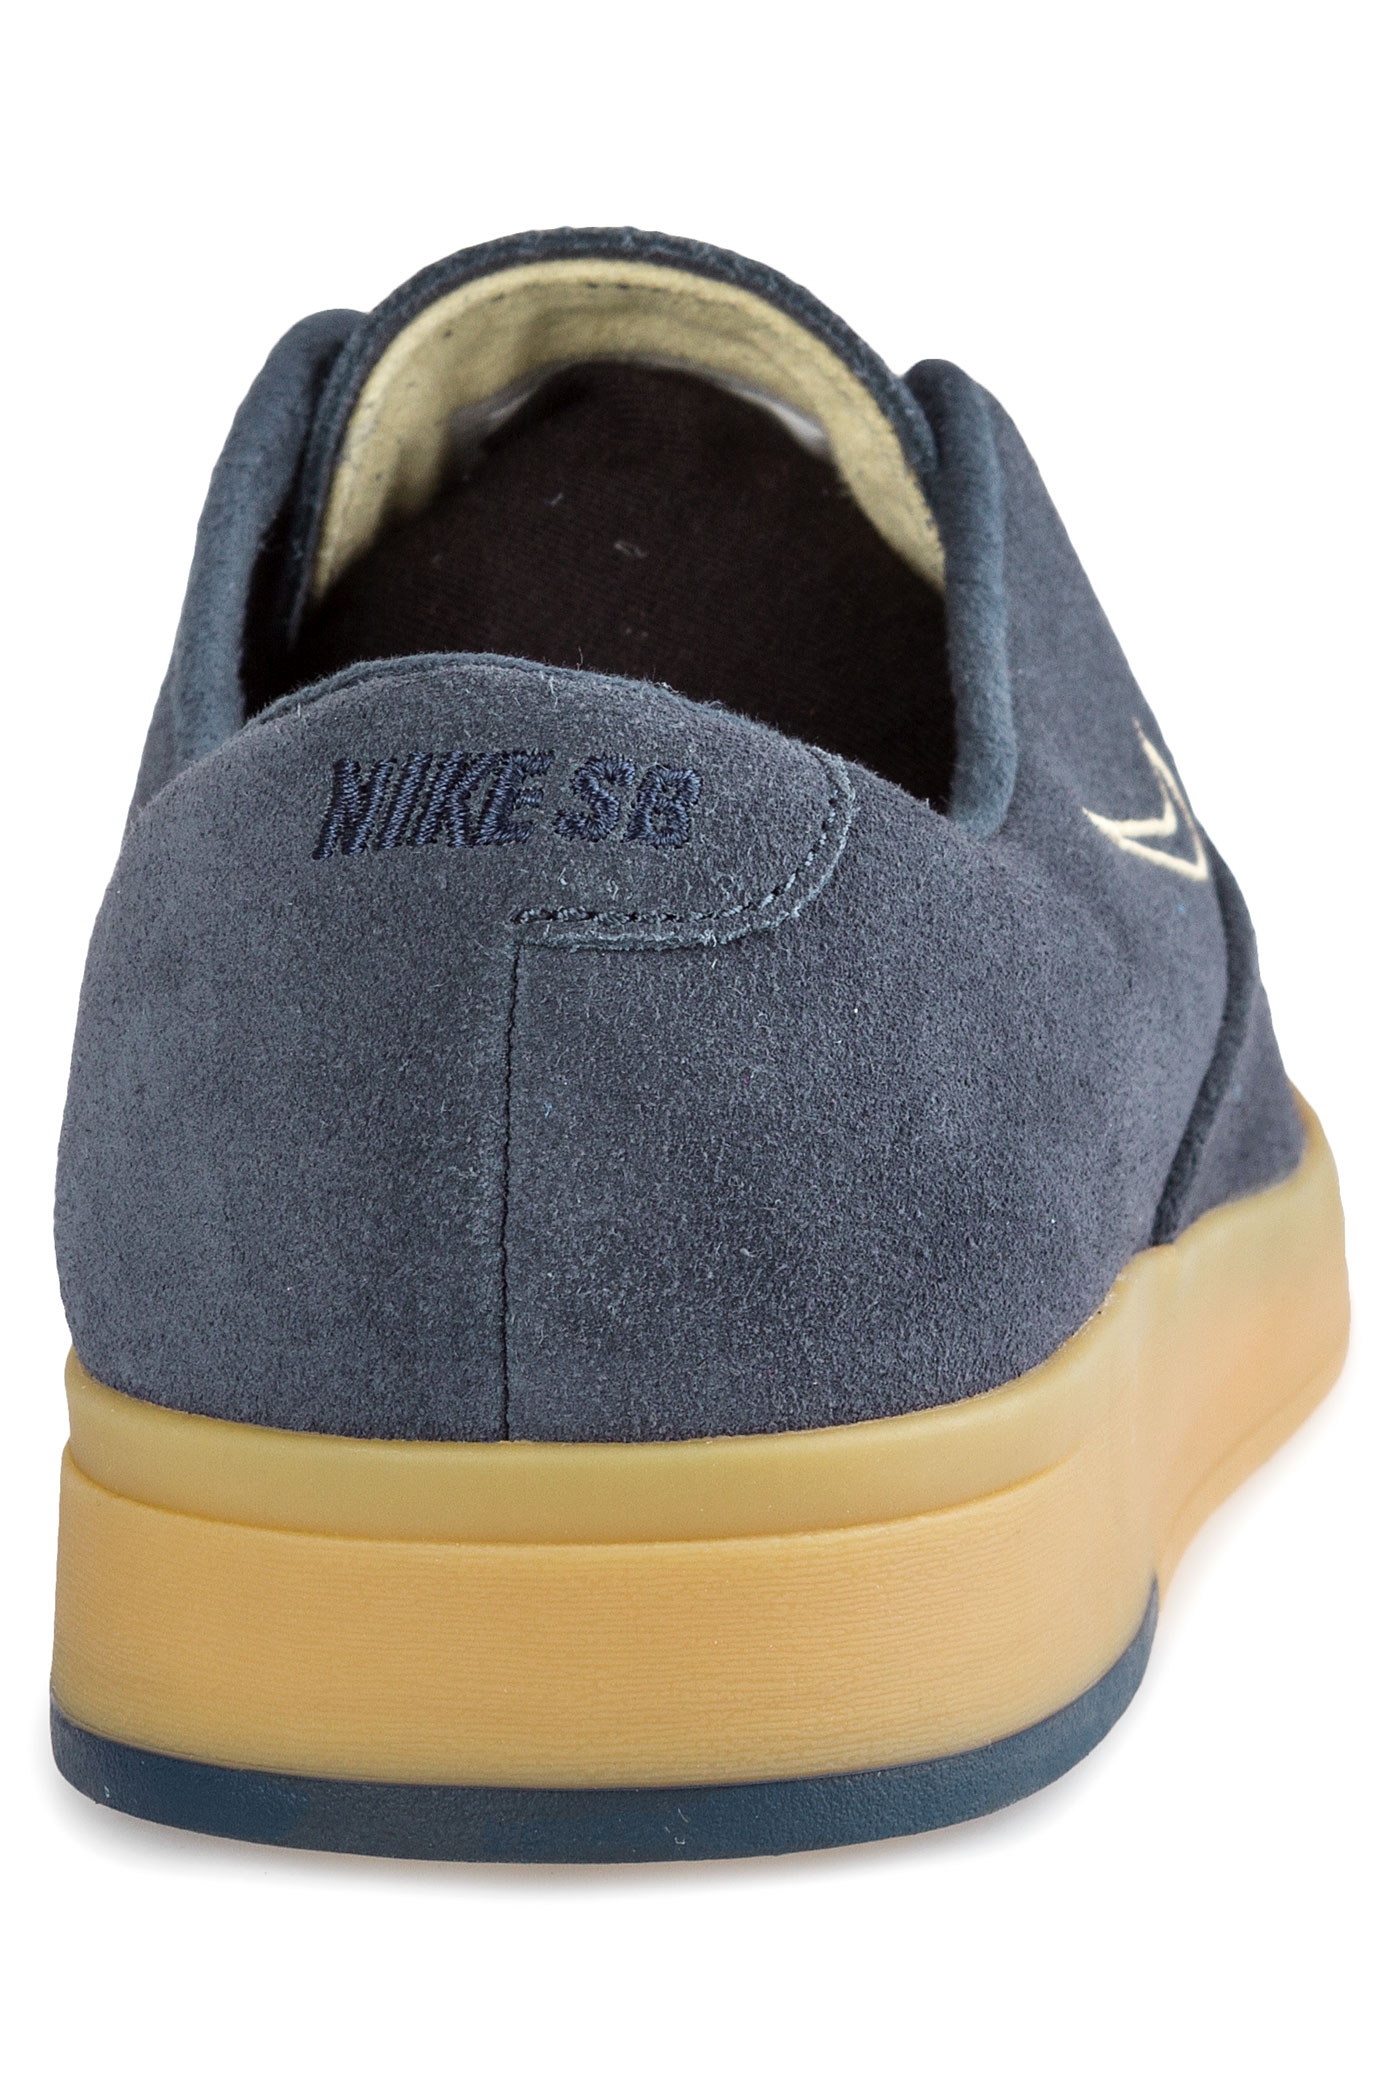 competitive price 66222 fbbfb ... Nike SB Zoom P-Rod X Shoes (thunder blue)